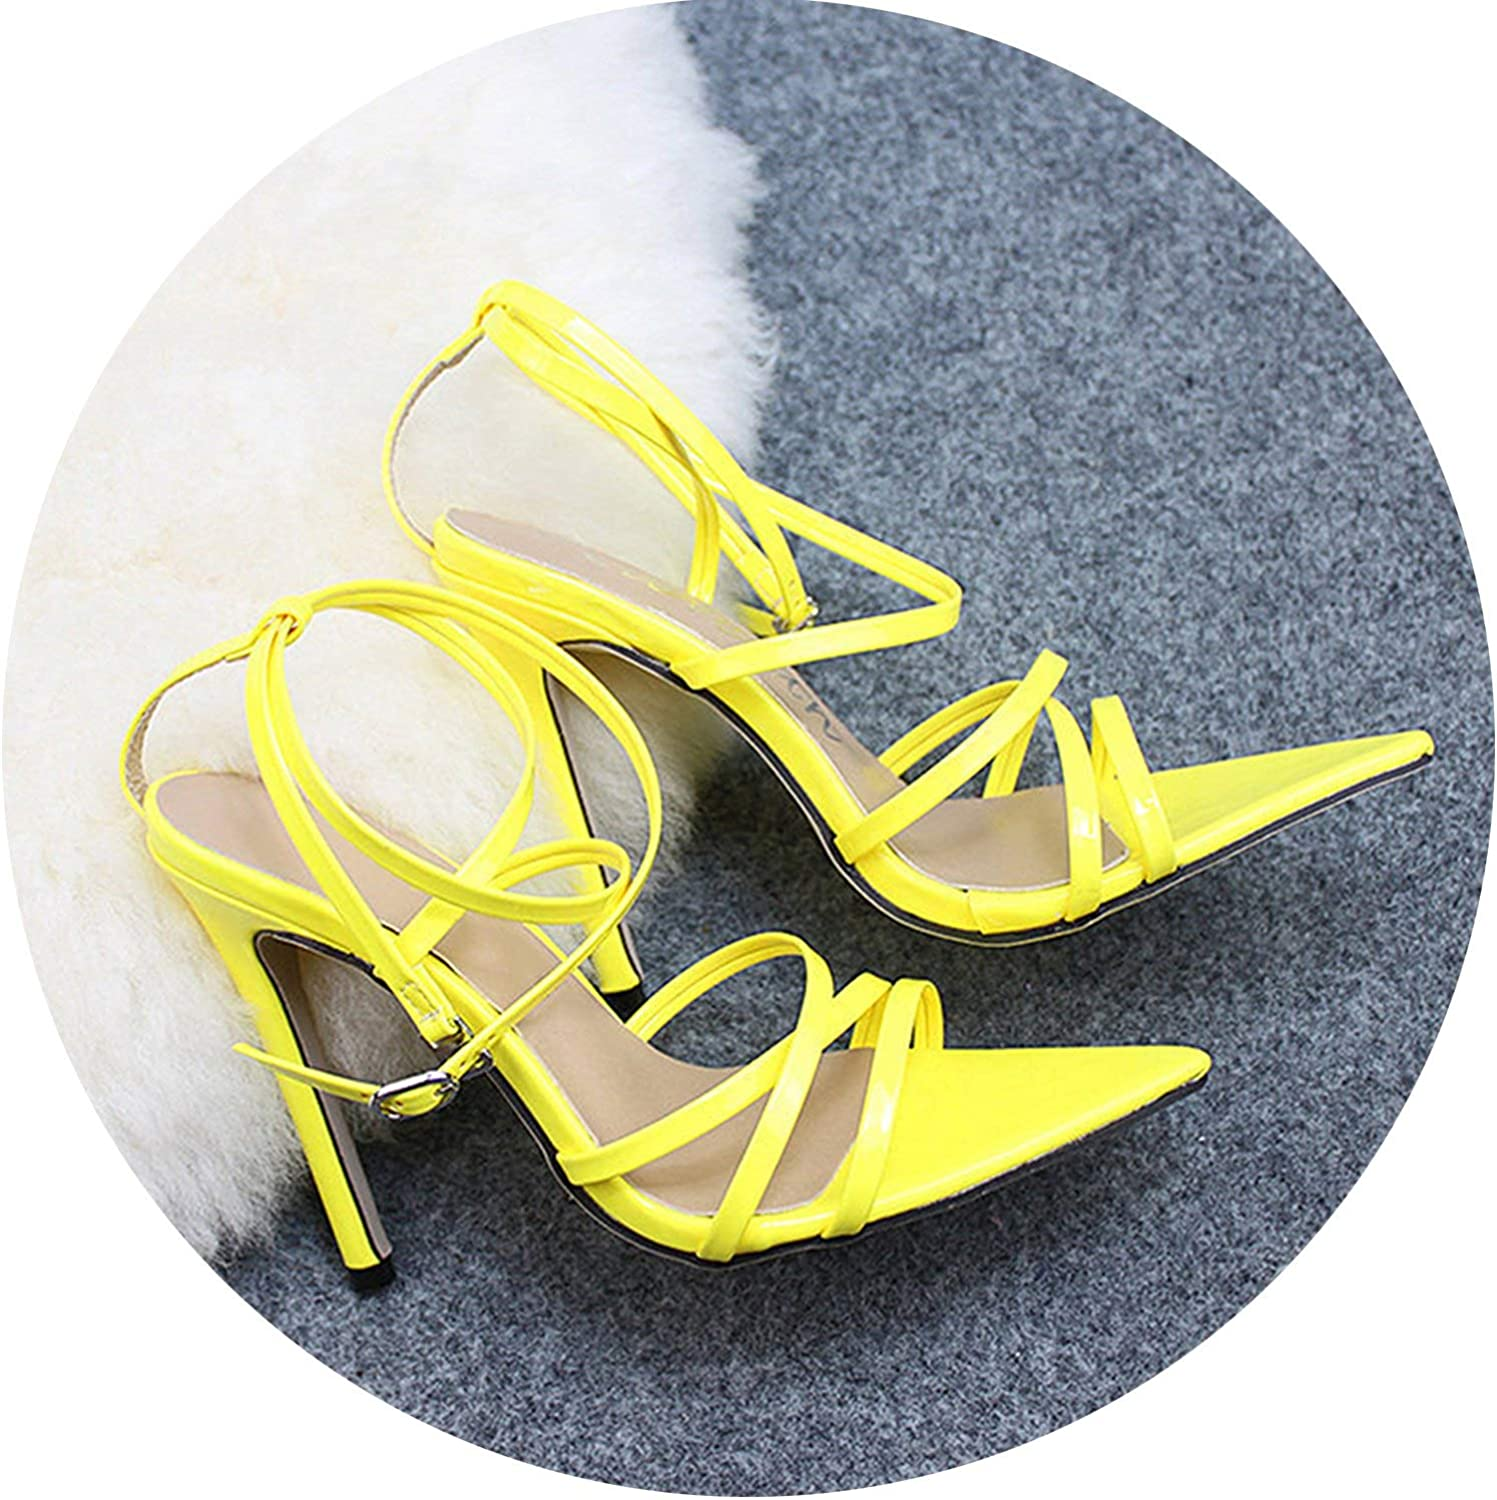 Super High 11.5CM Thin Heels Women Pumps Ankle Cross Strap Sandals shoes Woman Ladies Pointed Toe High Heels Dress Party shoes,Yellow,42